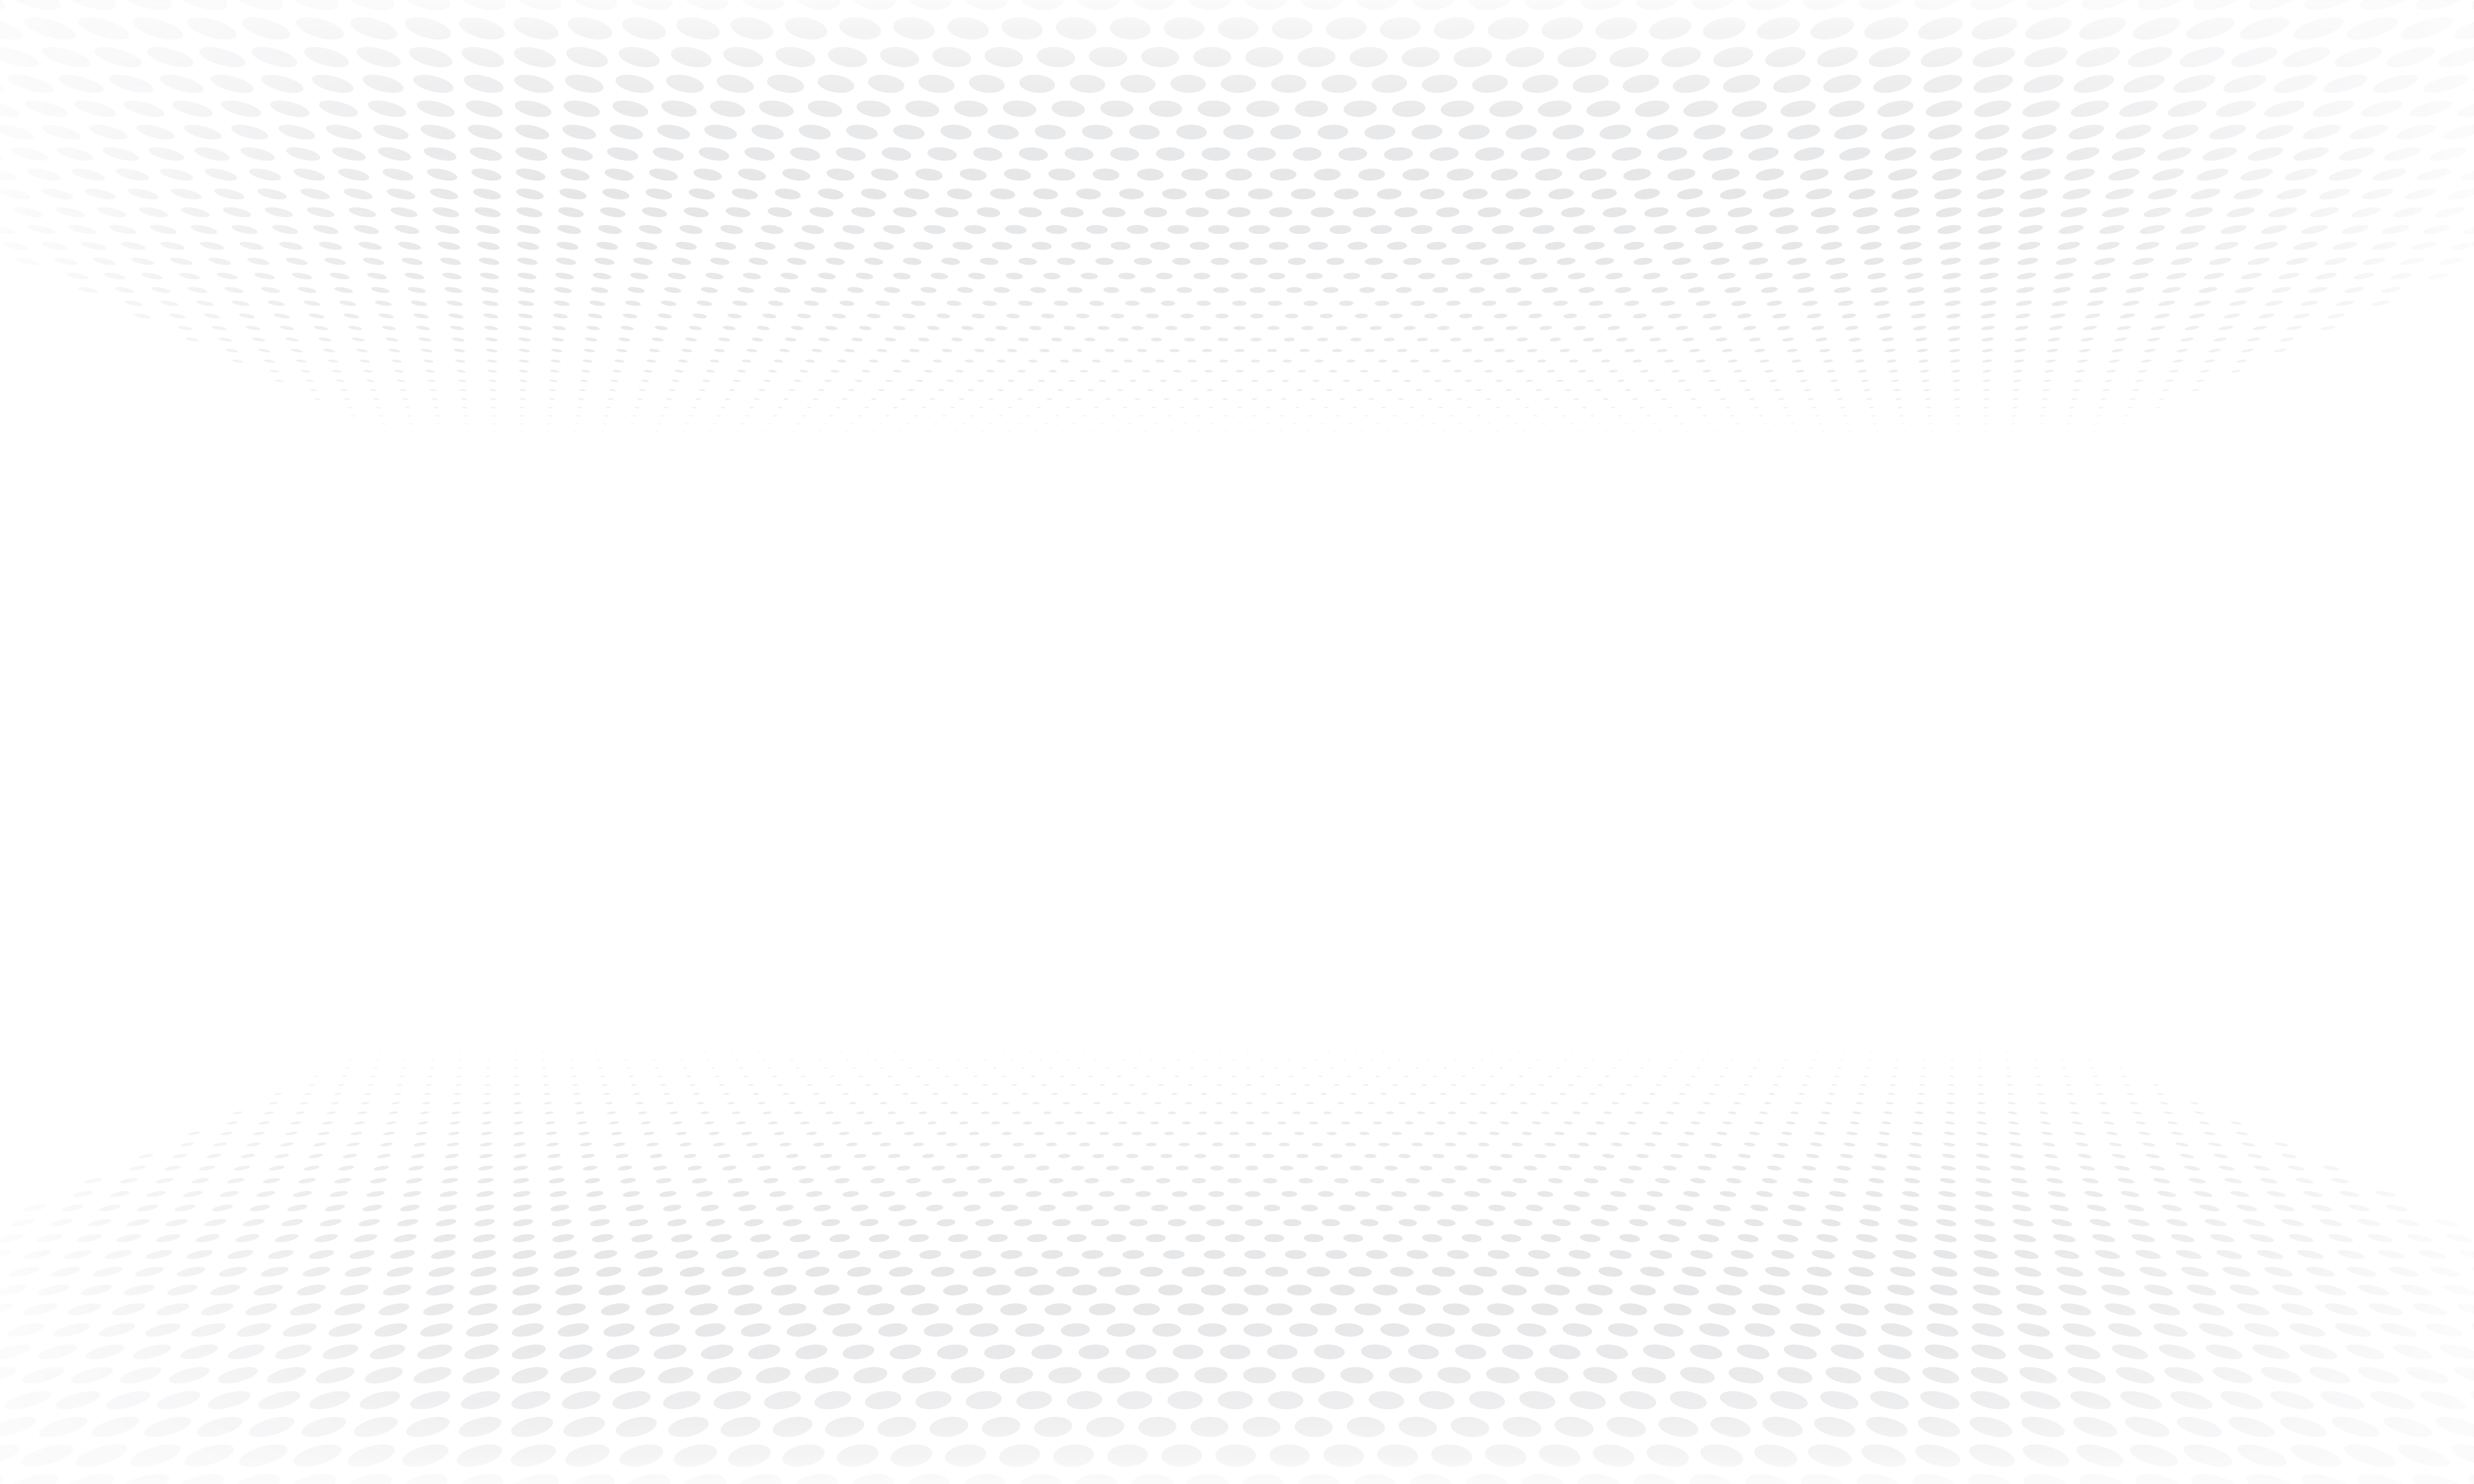 Halftone pattern background or vector abstract dot wave gradient backdrop